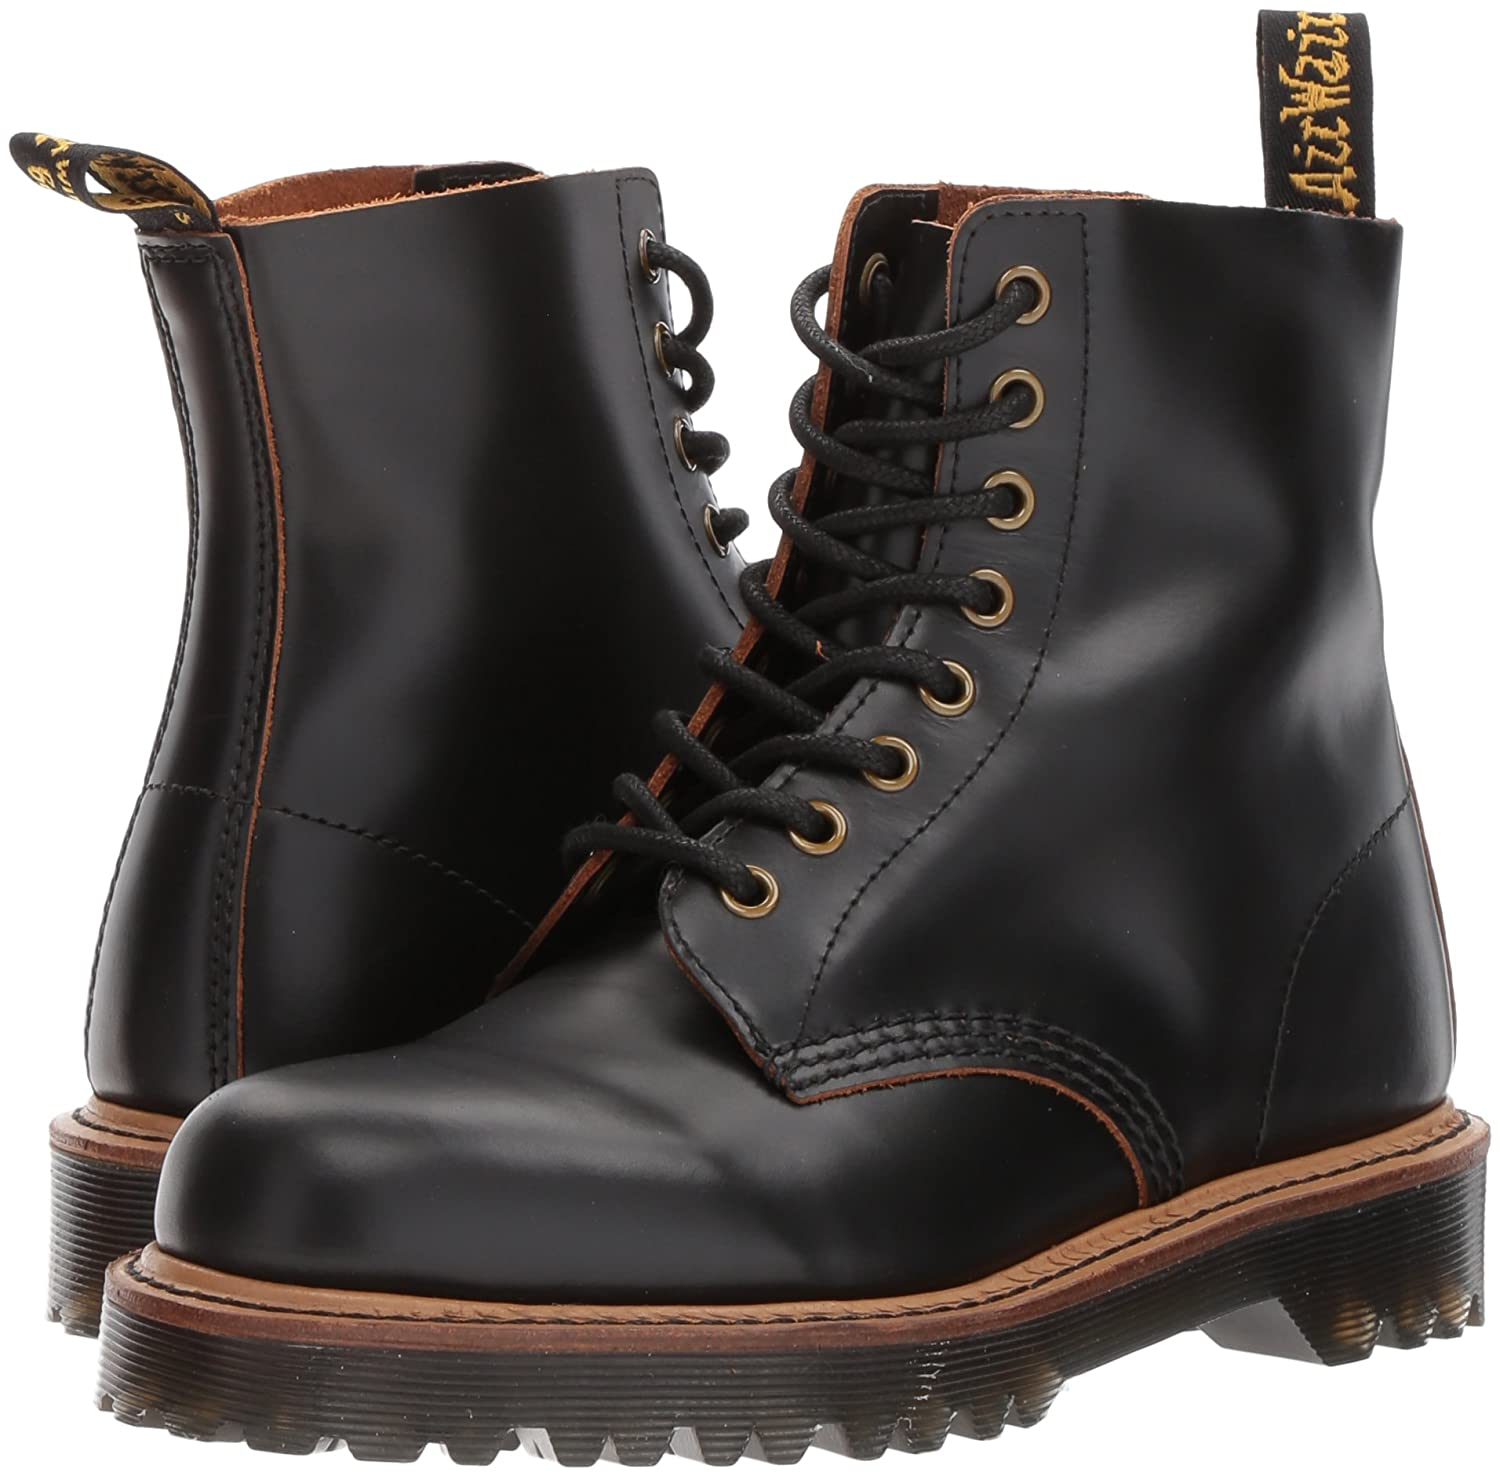 Dr. Martens Women's Pascal II Fashion UK Boot B01MZ4XFJI 8 Medium UK Fashion (10 US)|Black Vintage Smooth 93bdc7